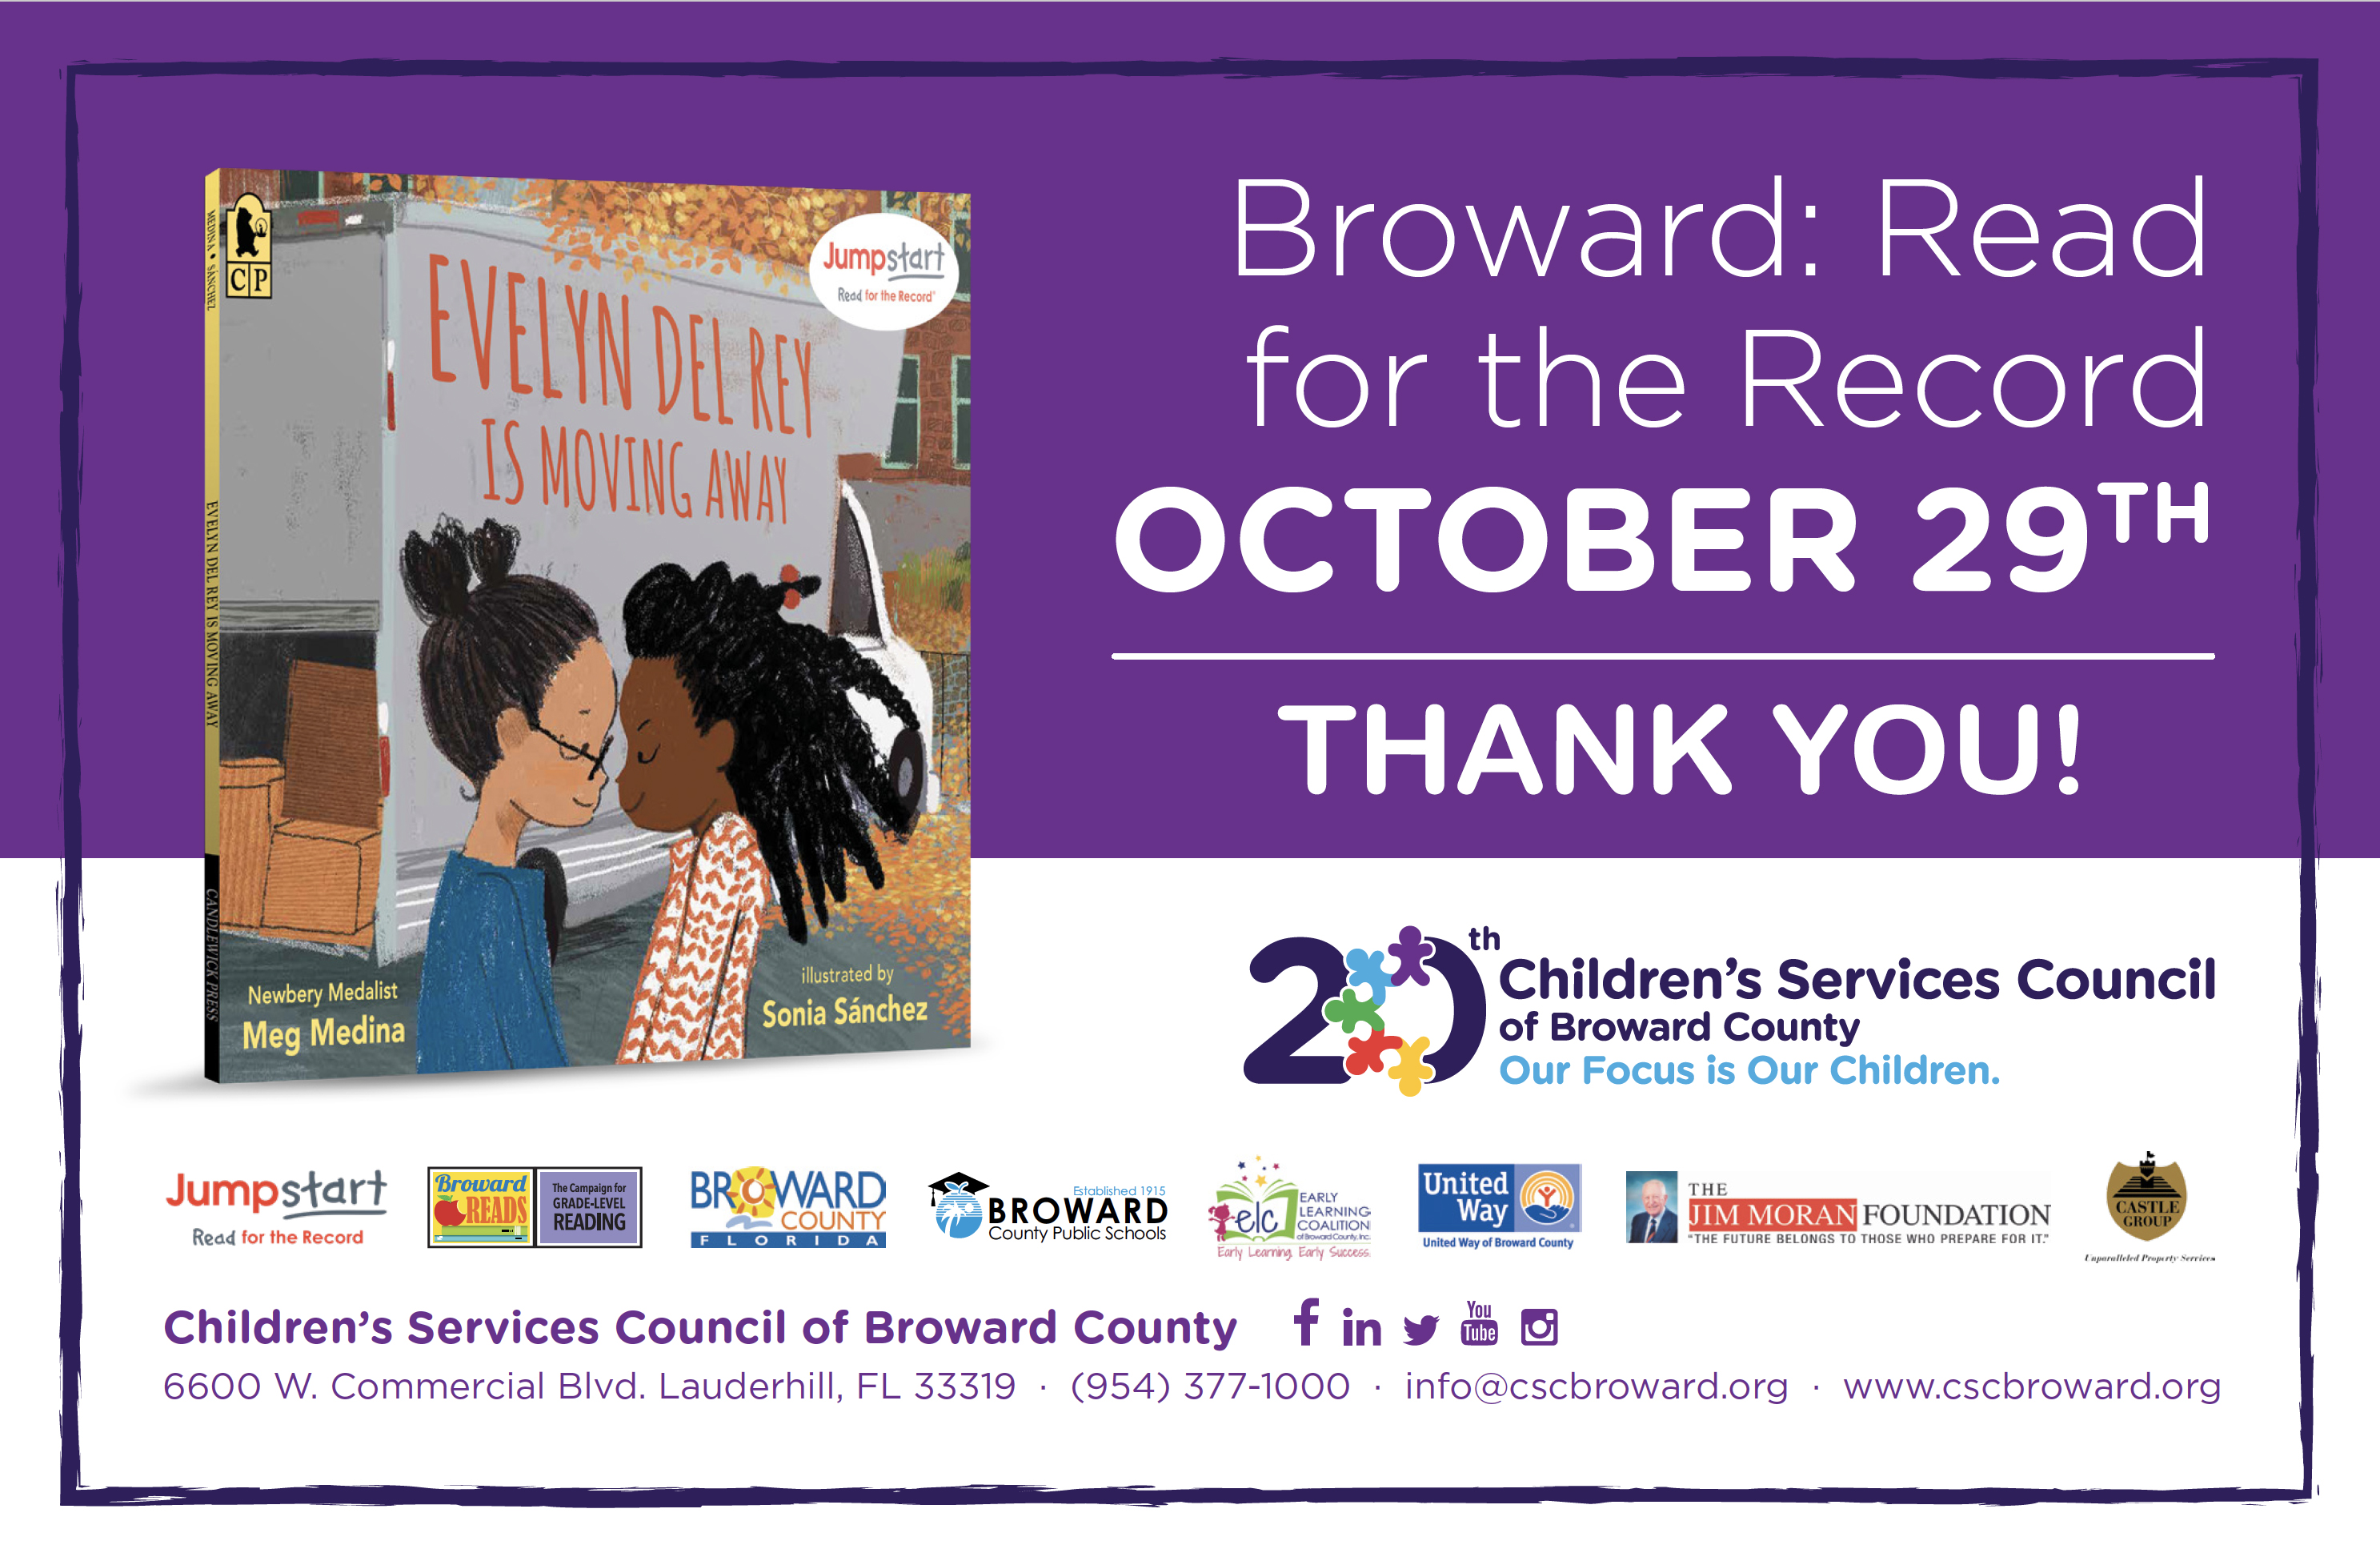 Broward: Read for the Record 2020 Thank You!